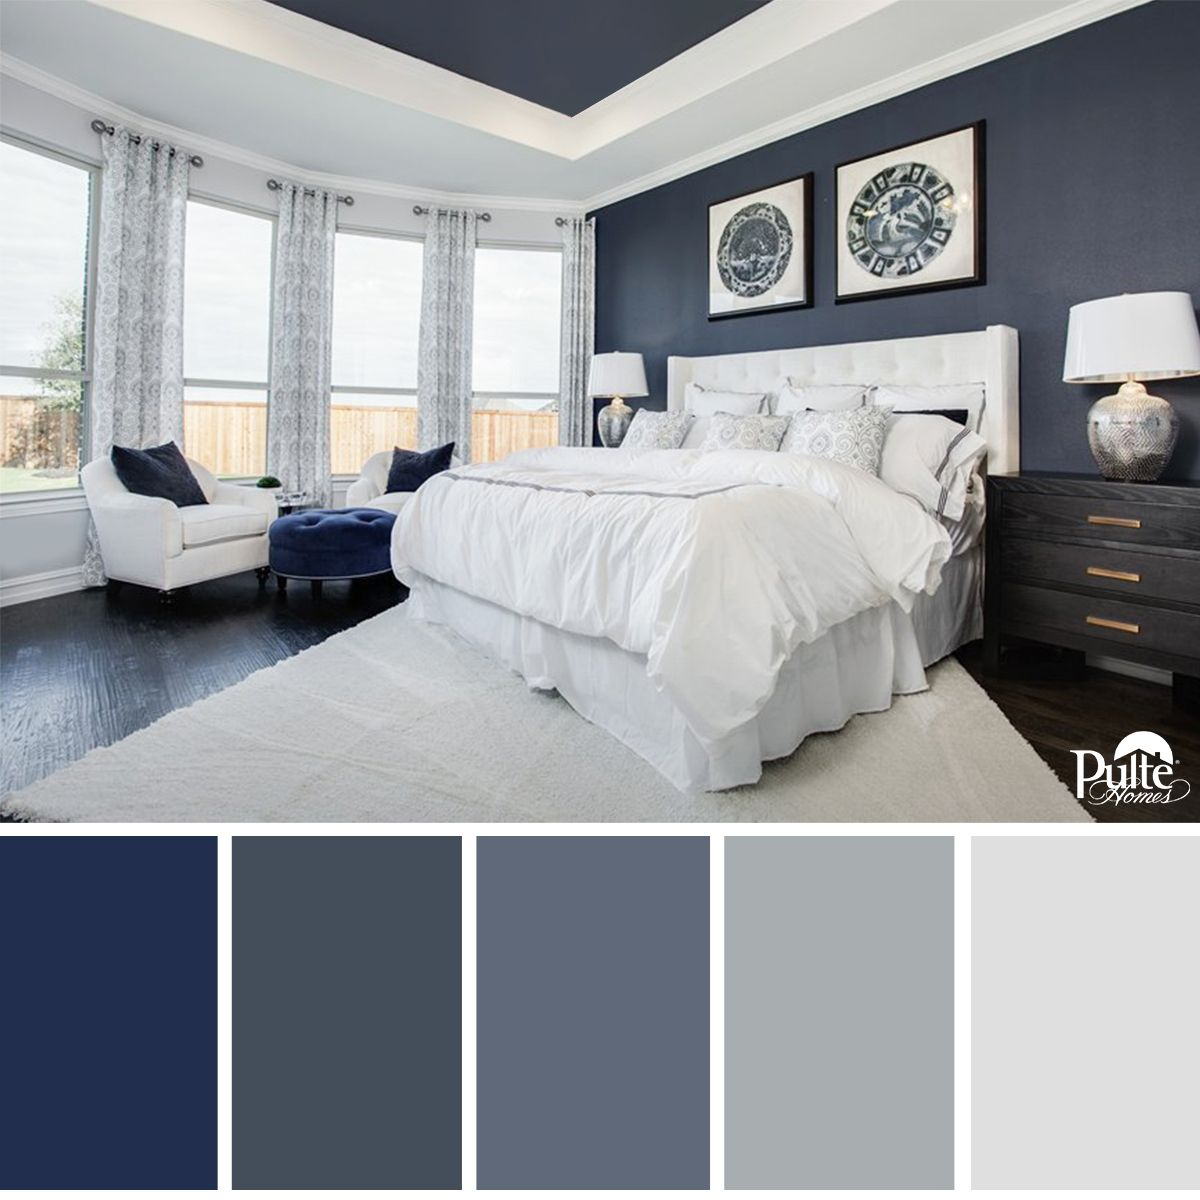 Amazing Colorful Master Bedroom Ideas Part - 5: This Bedroom Design Has The Right Idea. The Rich Blue Color Palette And  Decor Create